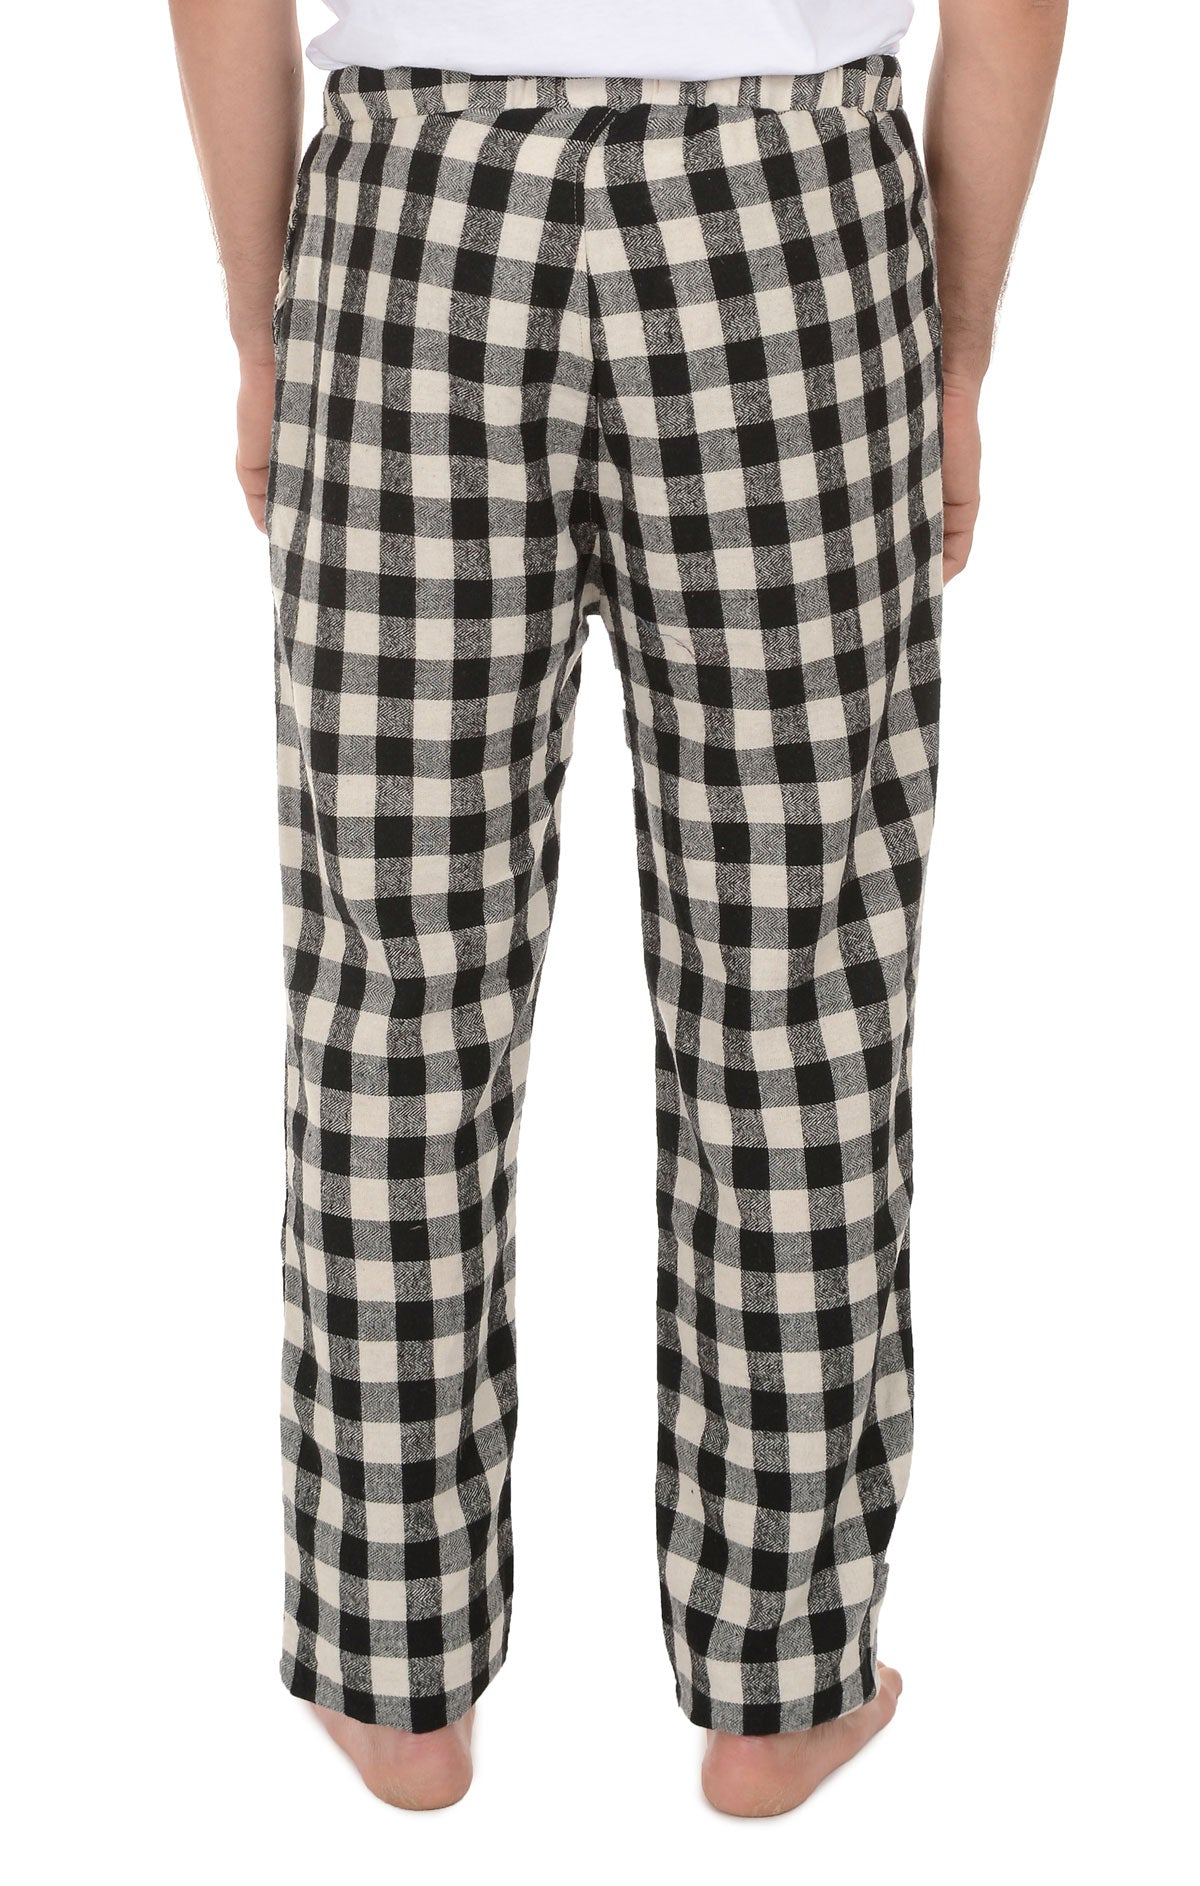 Black Buffalo Plaid Flannel Pajama Pant - jachs